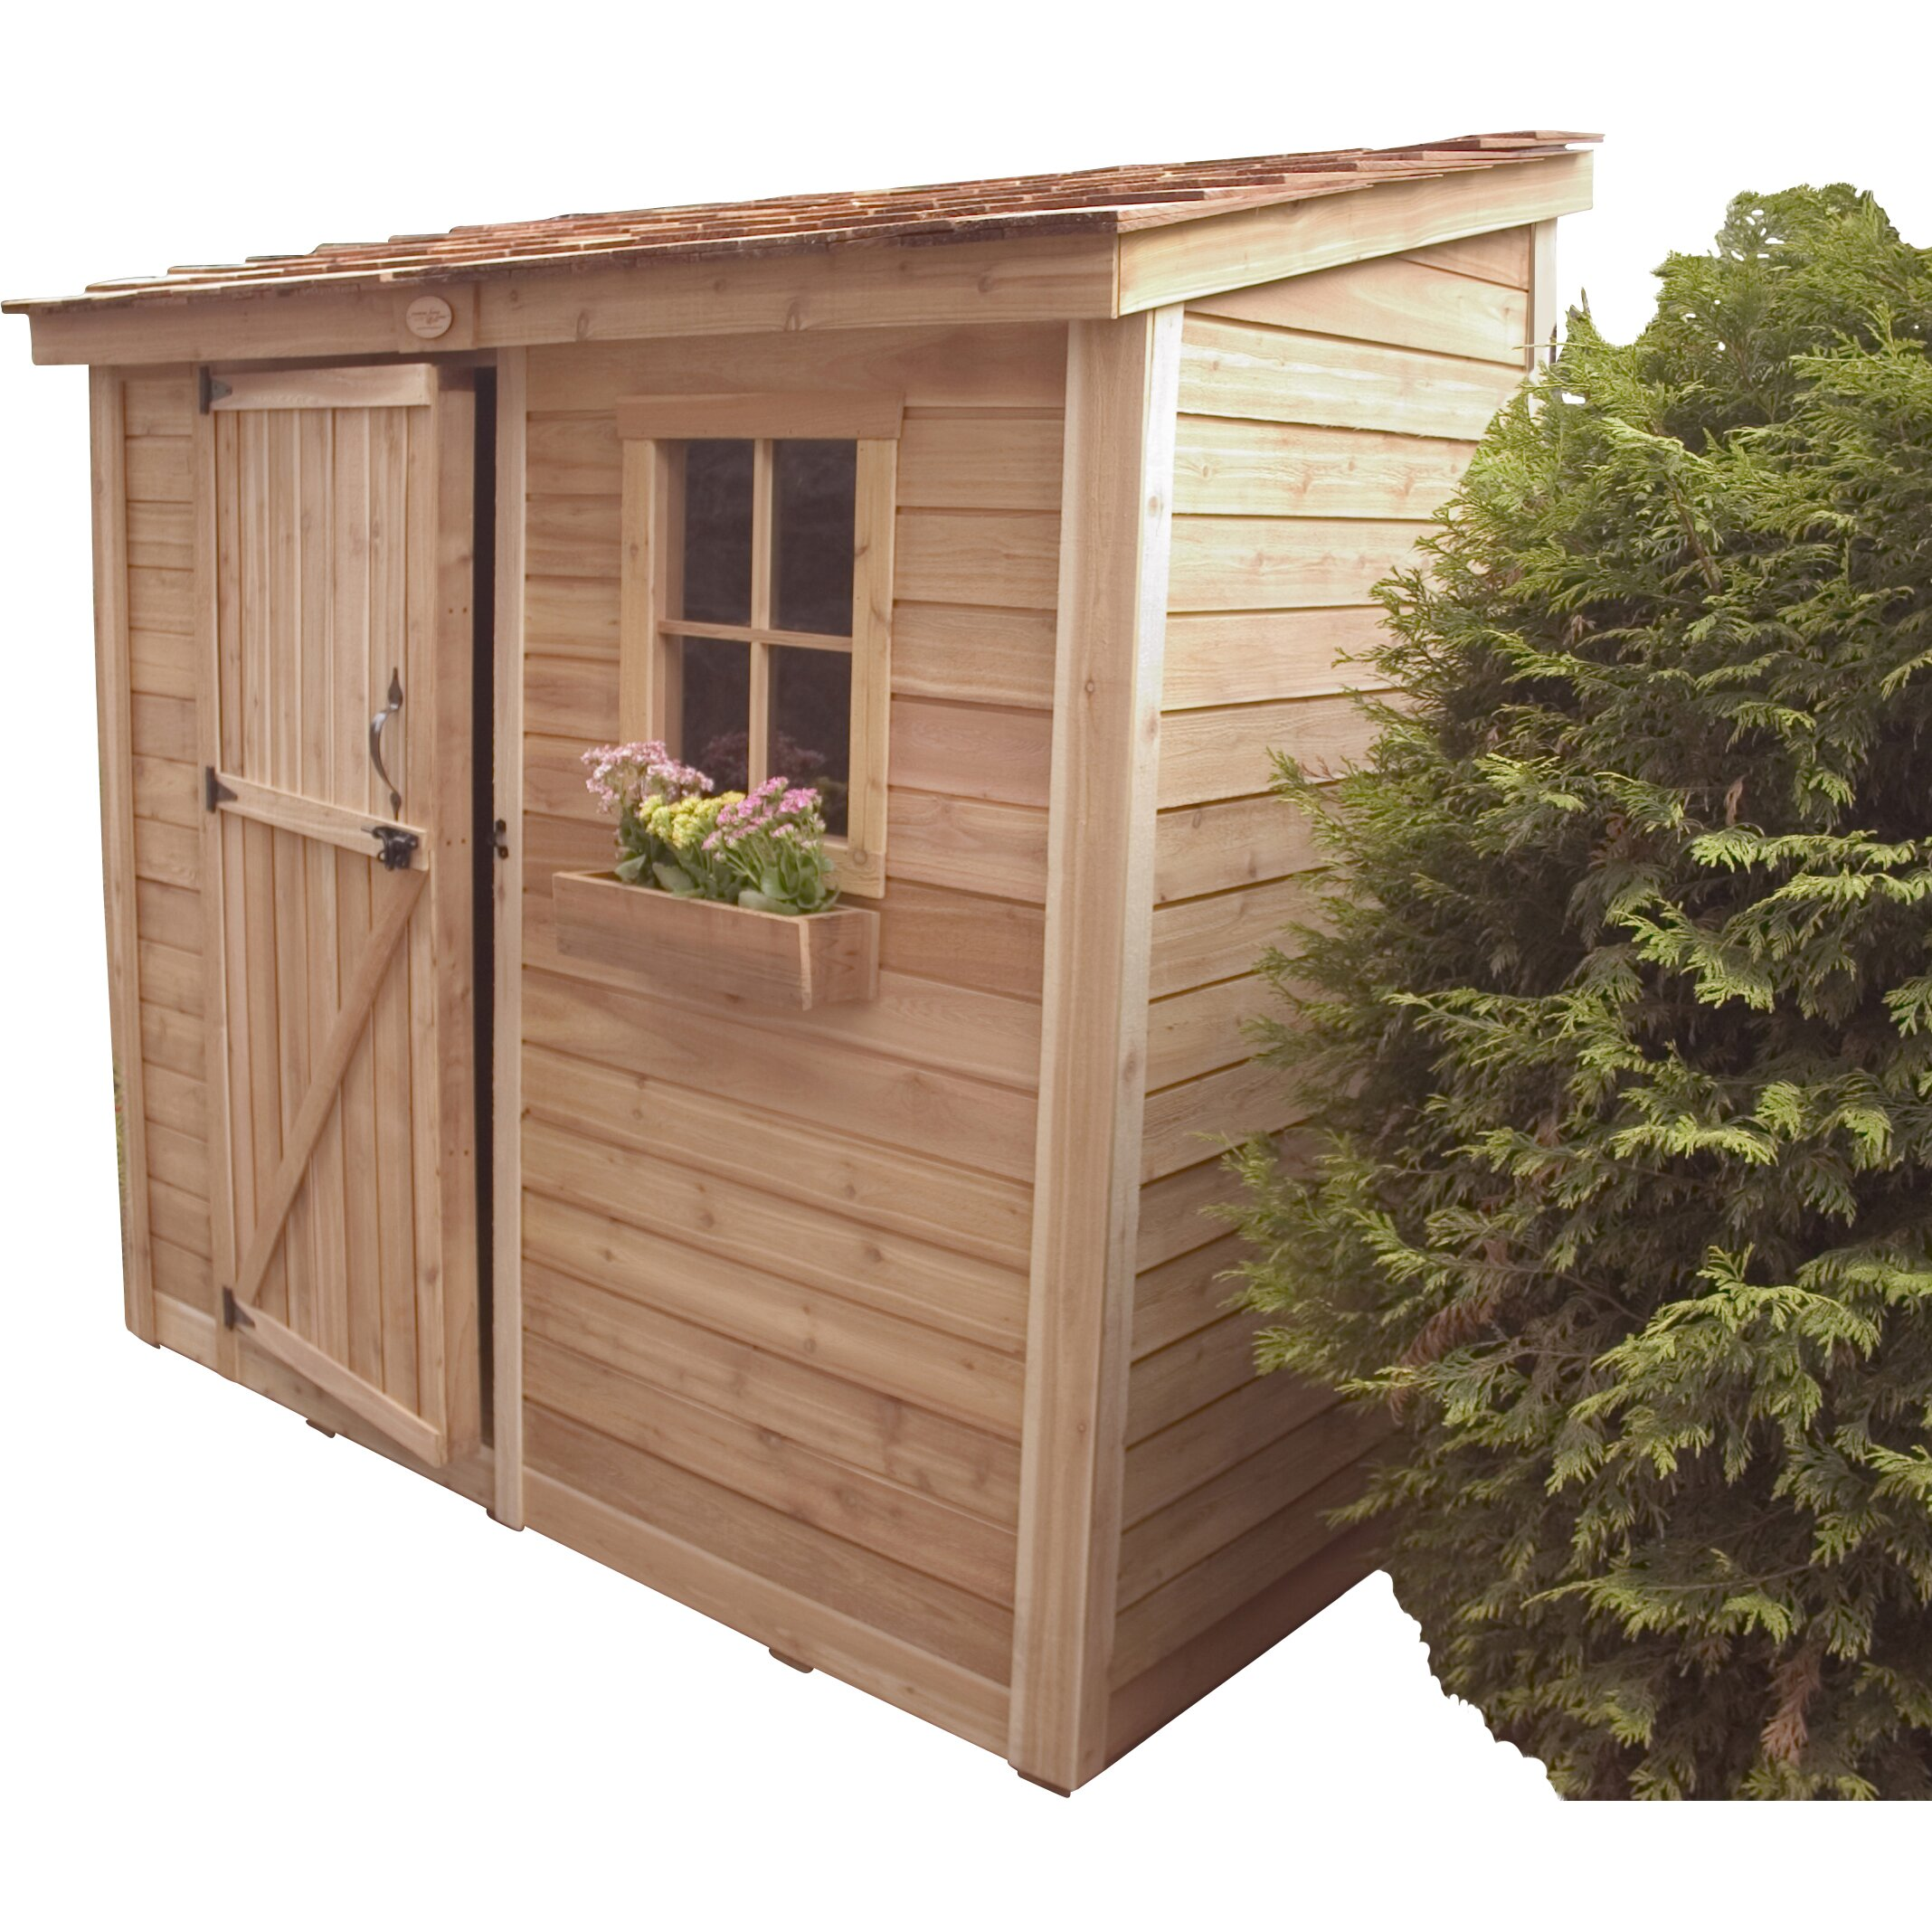 Spacesaver 8 ft w x 4 ft d wood lean to shed wayfair for Garden shed 5 x 4